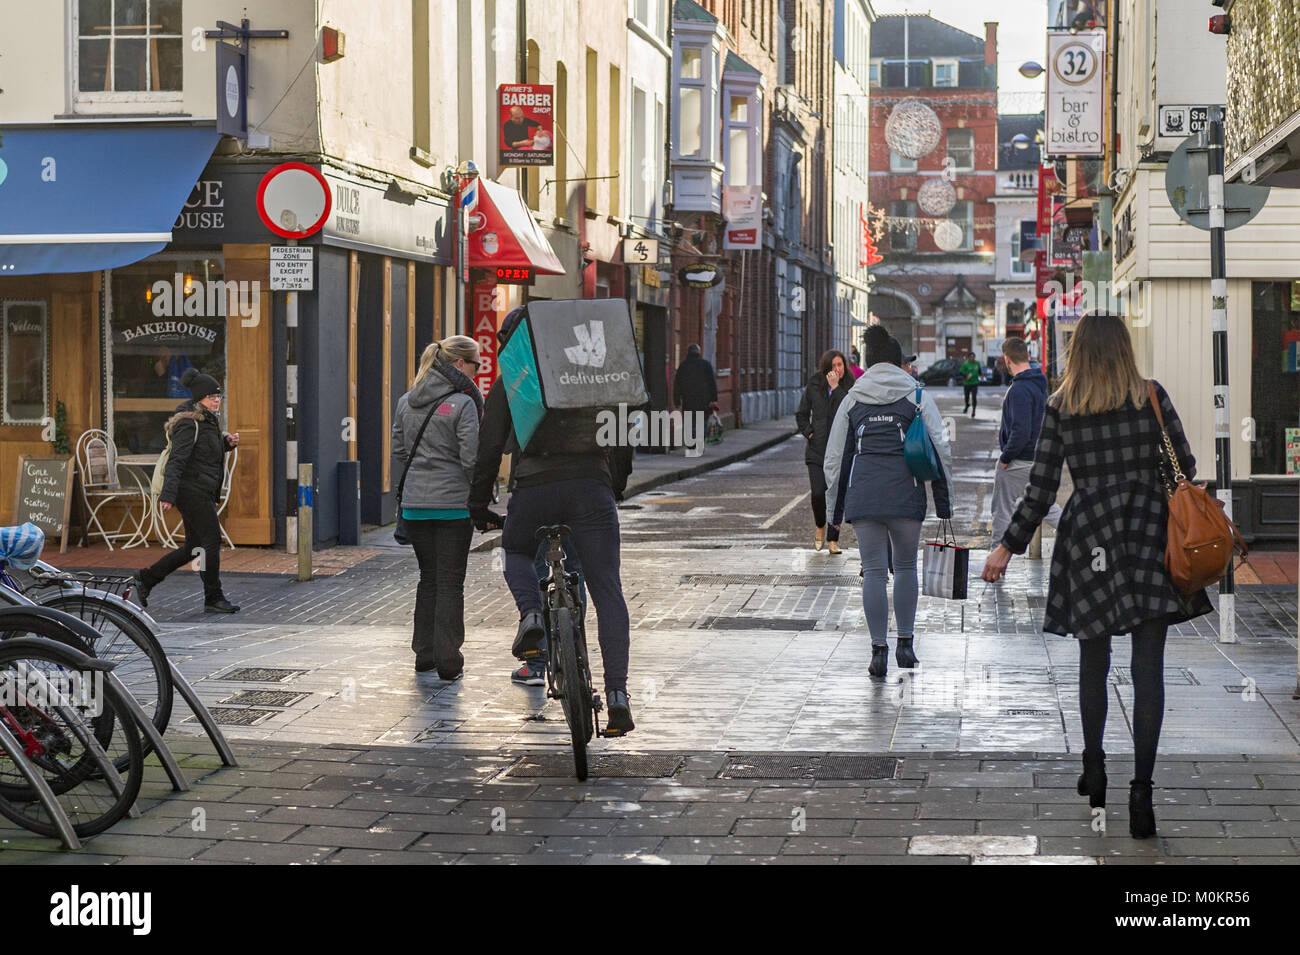 Deliveroo employee on a push bike delivering fast food with a delivery box on his back in Cork City, Ireland - Stock Image